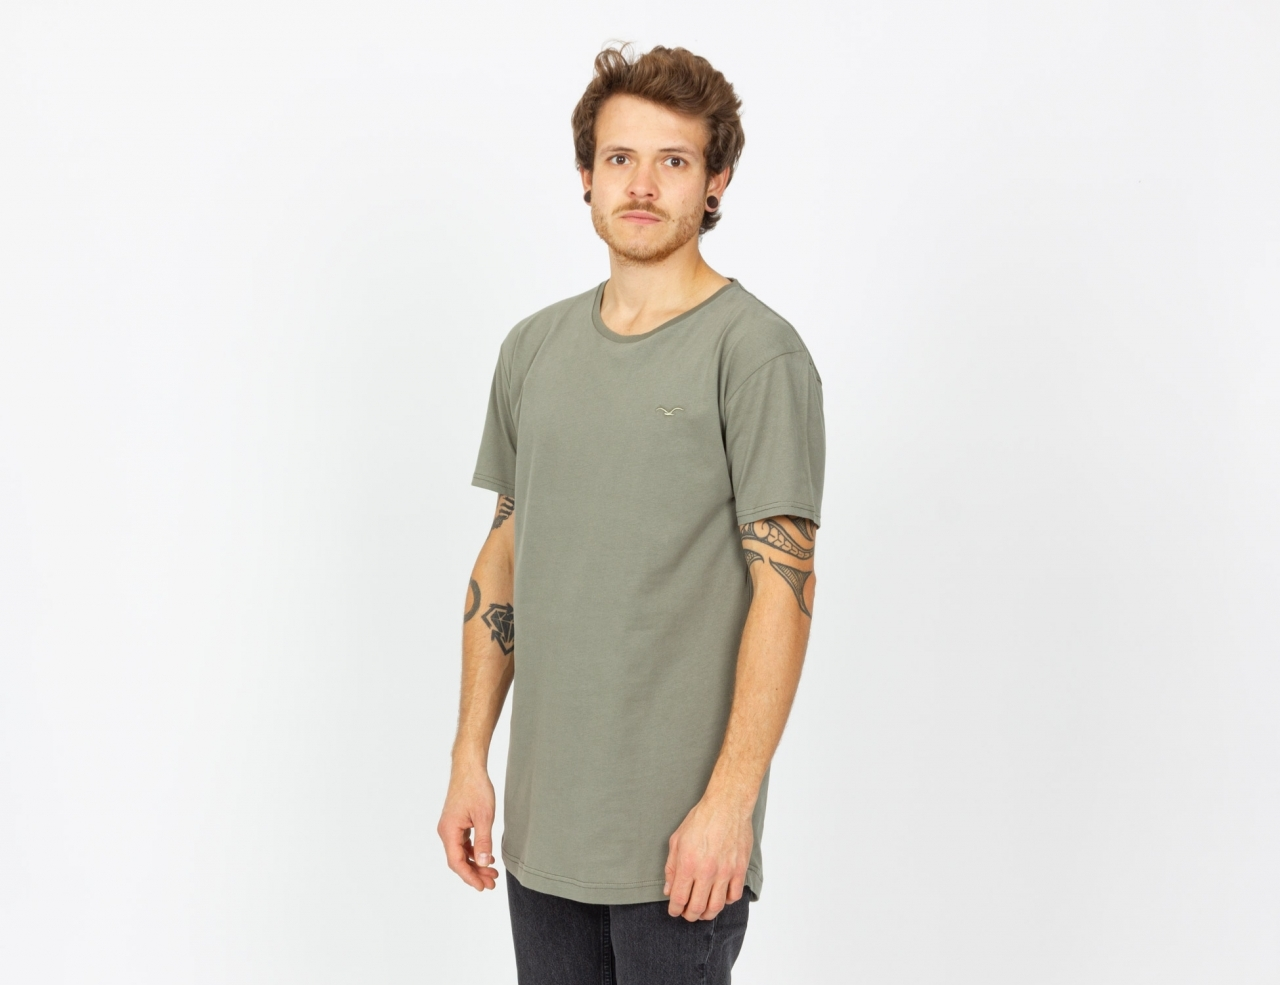 Cleptomanicx Ligull Long 2 T-Shirt - Dusty Olive